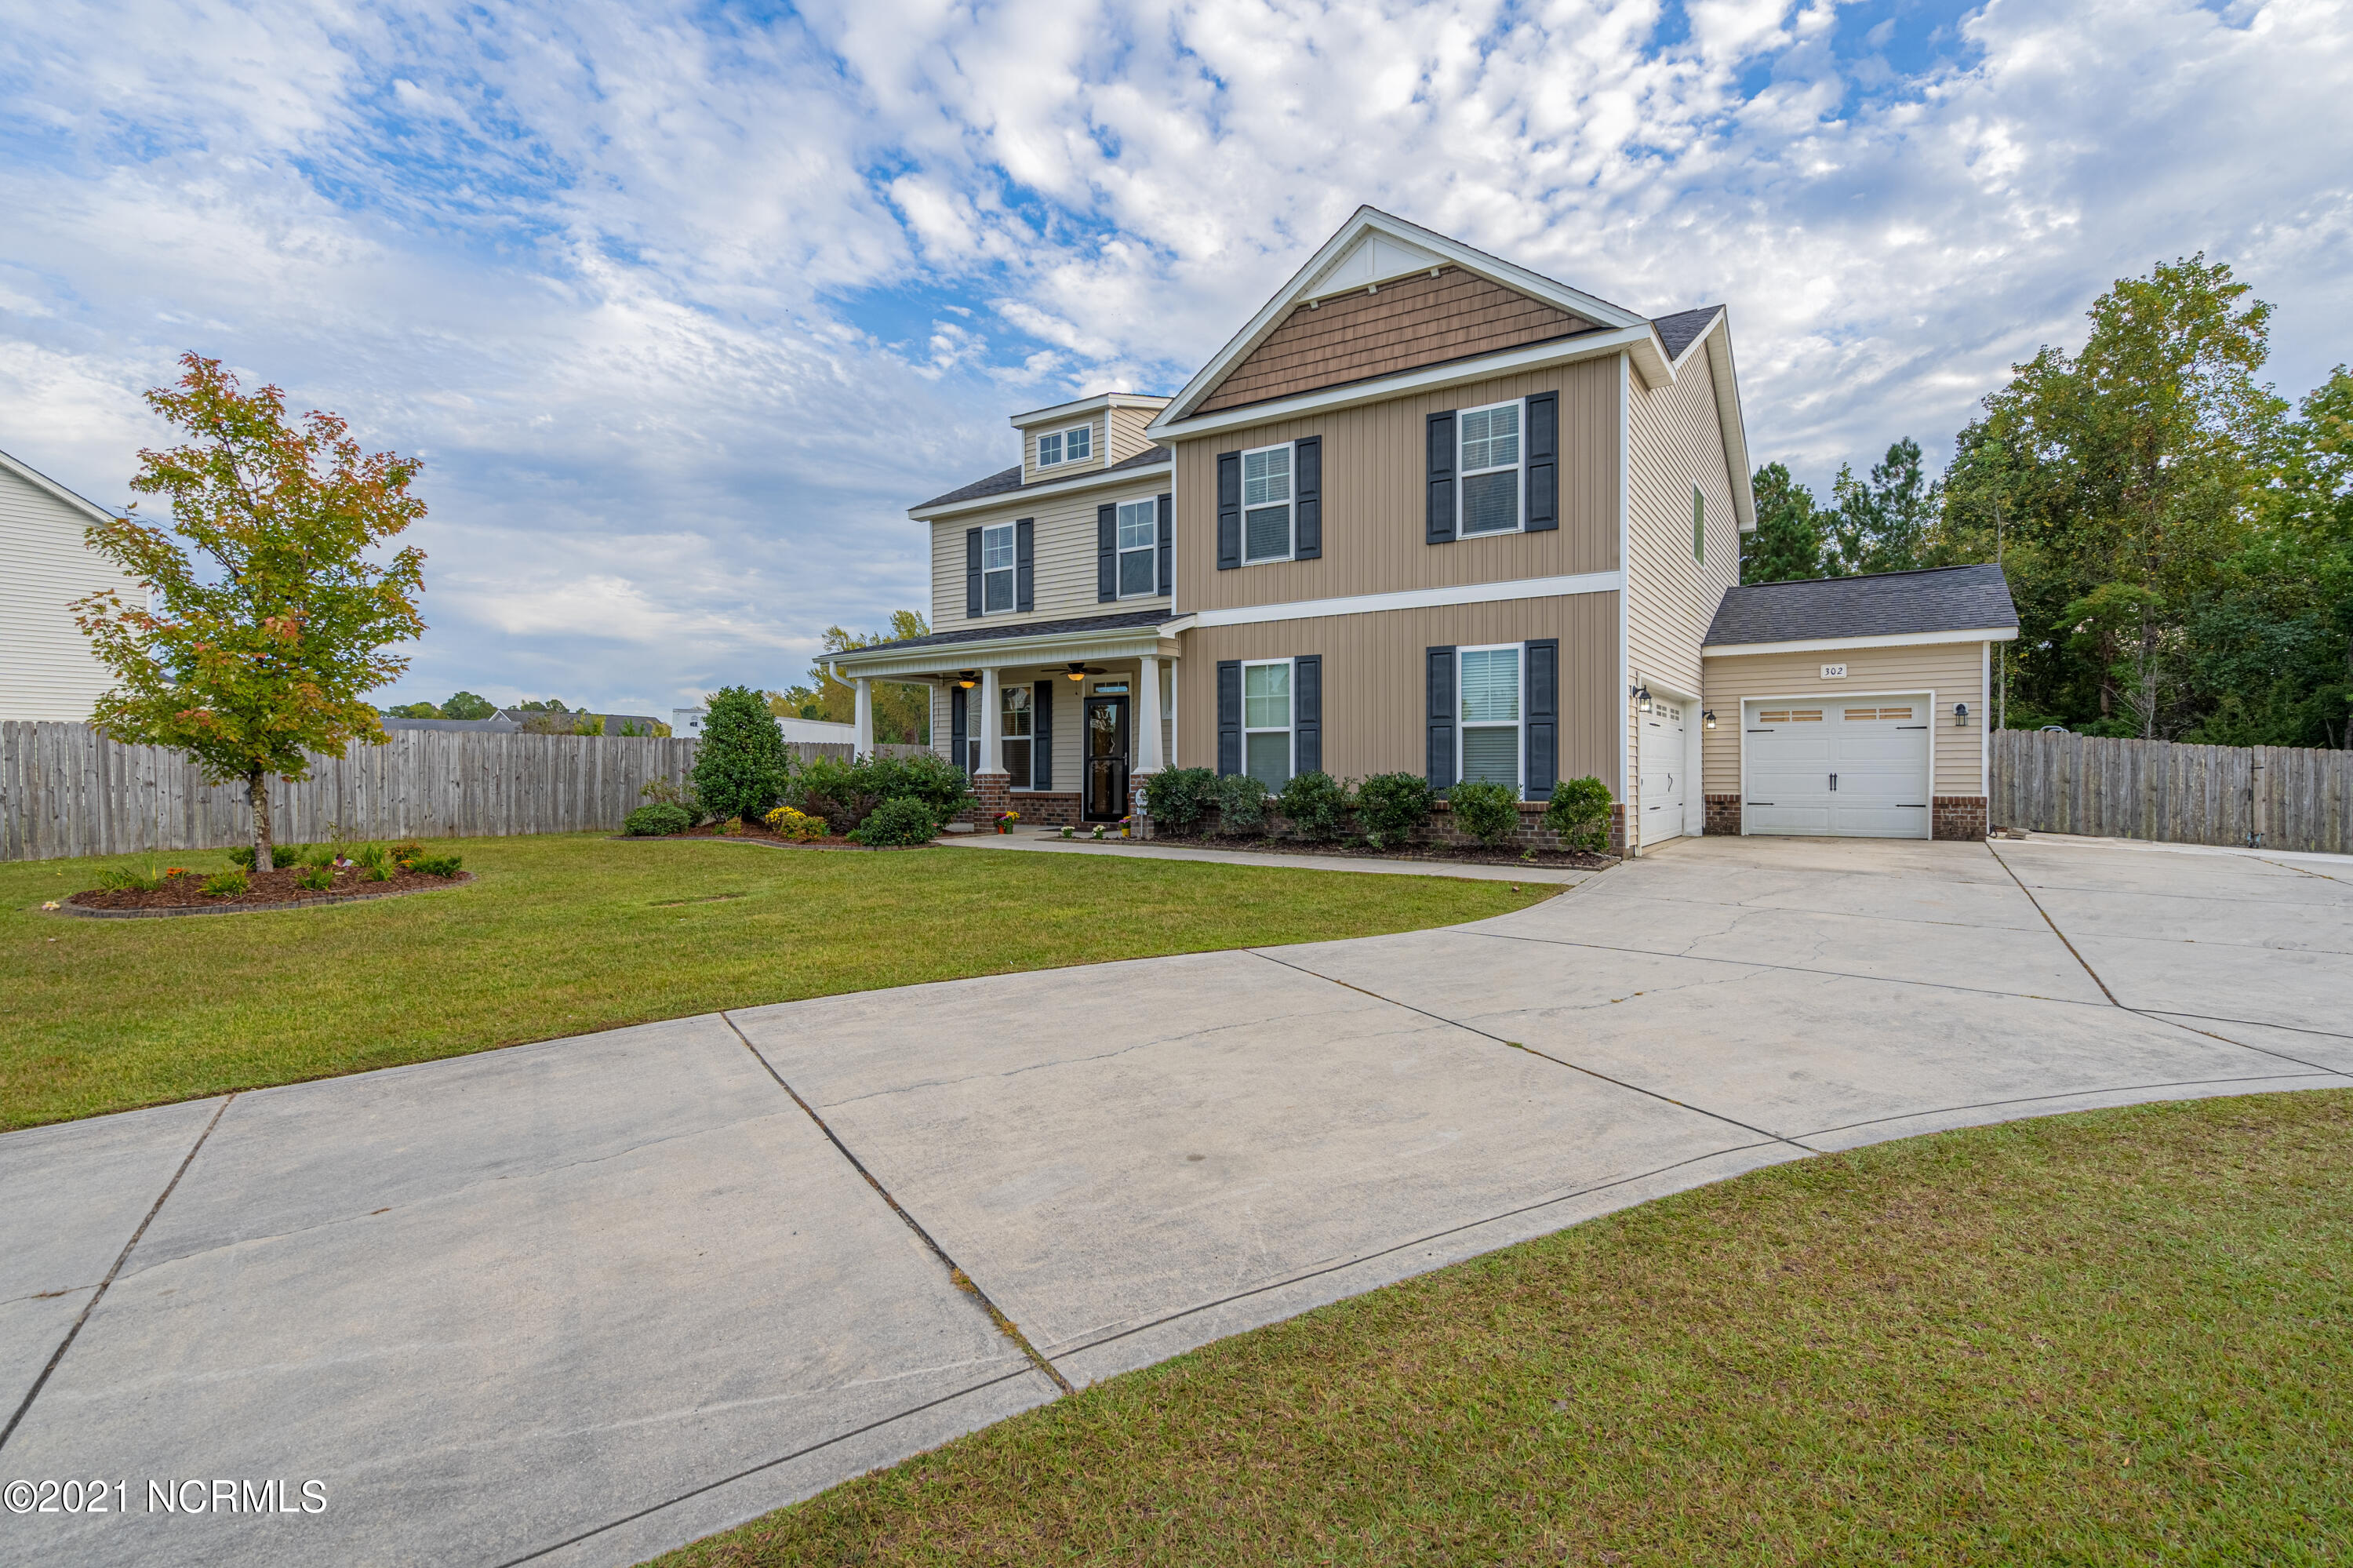 Turn Key Ready! This 4 bedroom, 2.5 bathroom home is hot on the market! Located near shopping and local schools! Neighborhood features community pool, side walks and ponds!